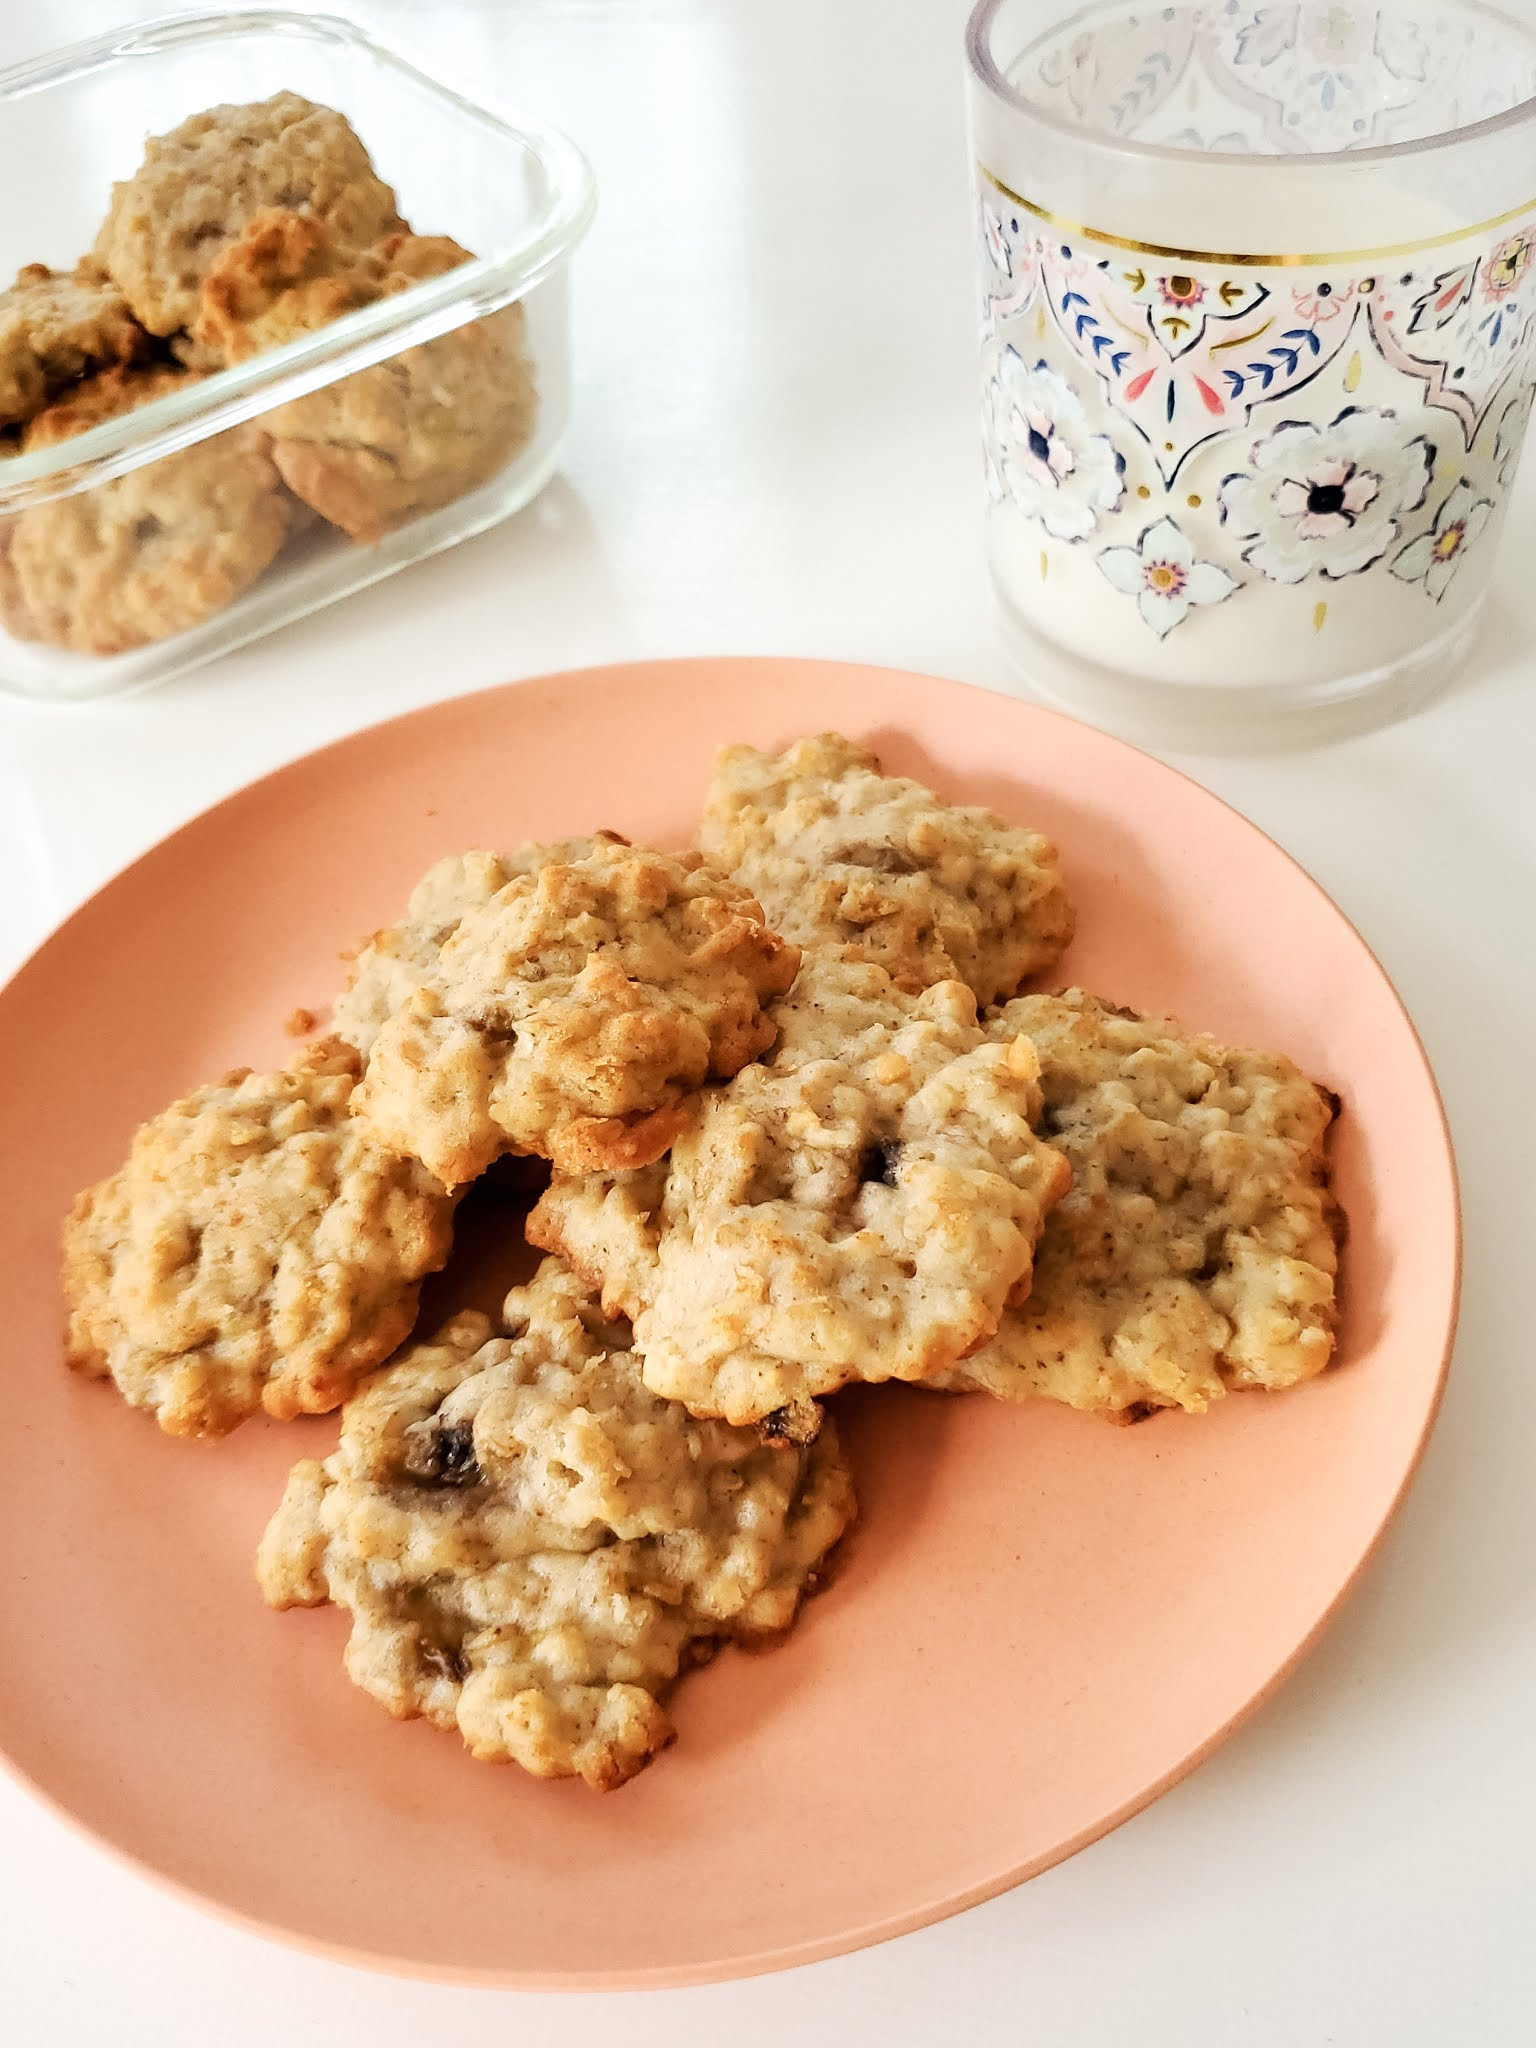 Delicious and easy Banana Oatmeal cookies recipe